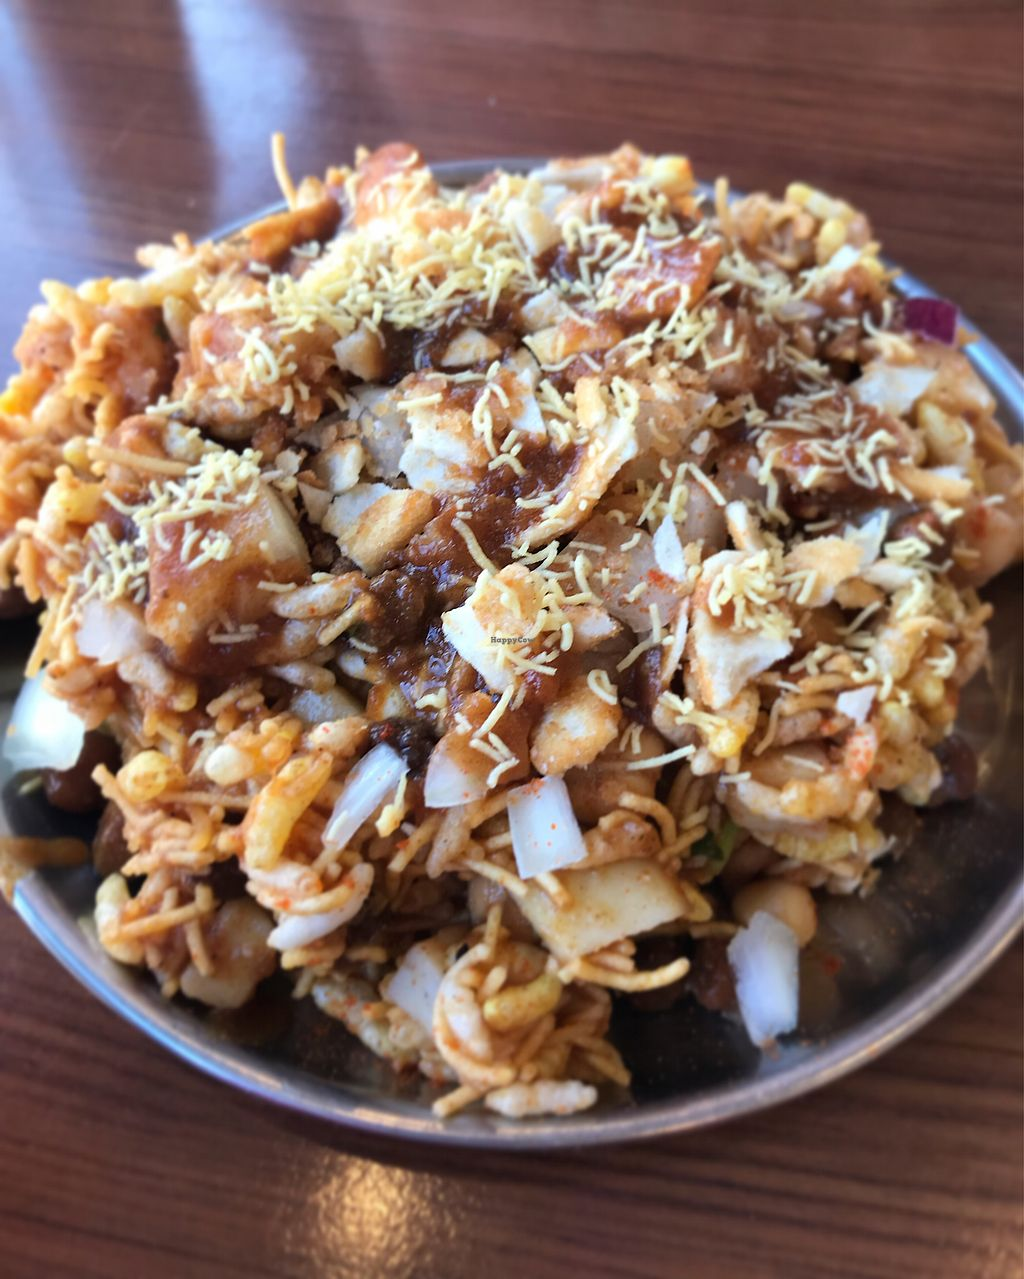 "Photo of RK Sweets  by <a href=""/members/profile/tamasinemmacook"">tamasinemmacook</a> <br/>Bhel Puri <br/> November 20, 2017  - <a href='/contact/abuse/image/28814/327487'>Report</a>"